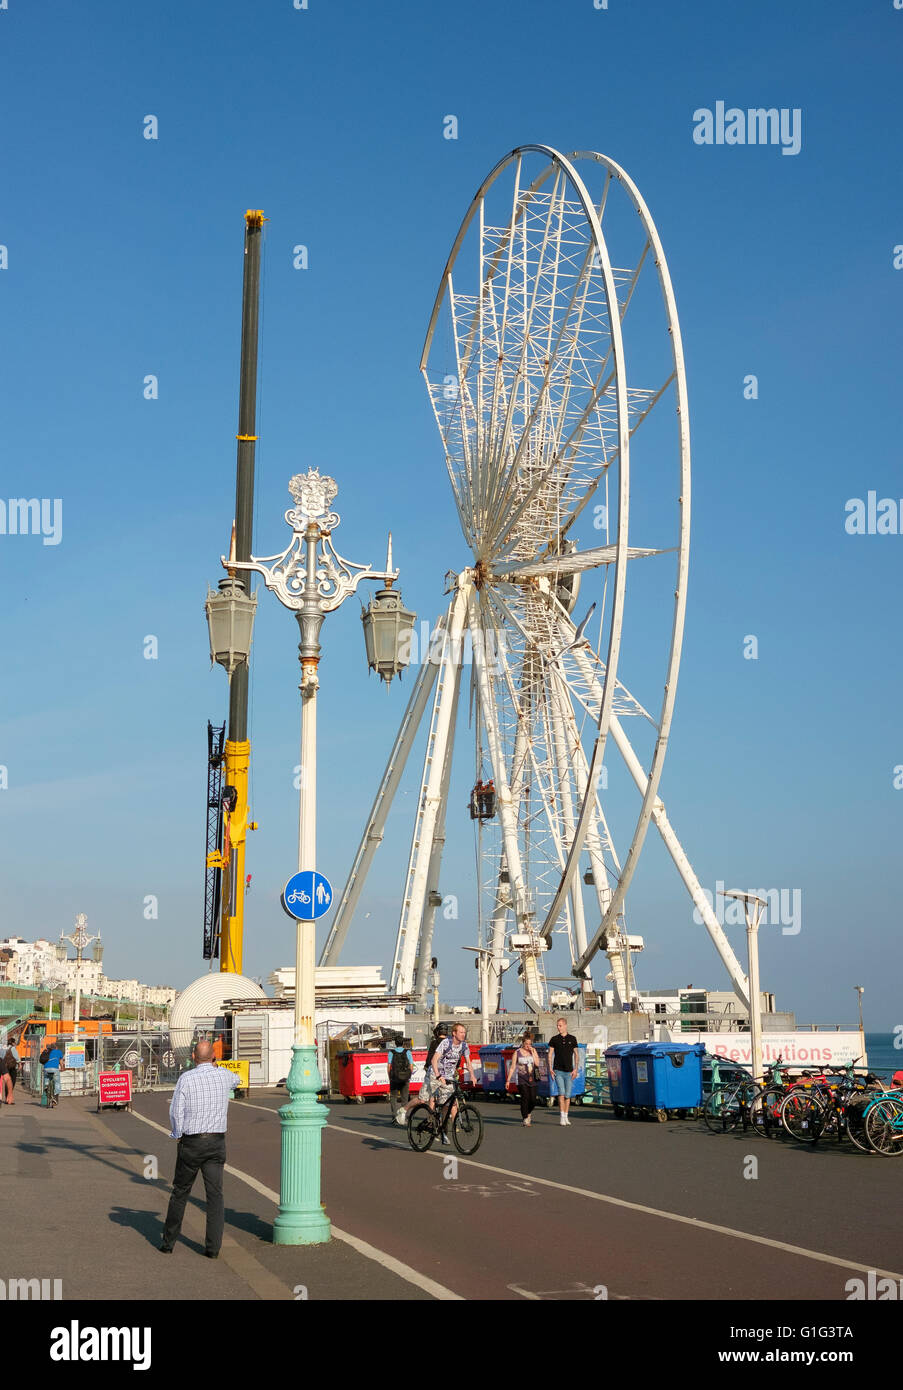 13th May 2016, Brighton seafront, UK: The Brighton Wheel is being dismantled. - Stock Image